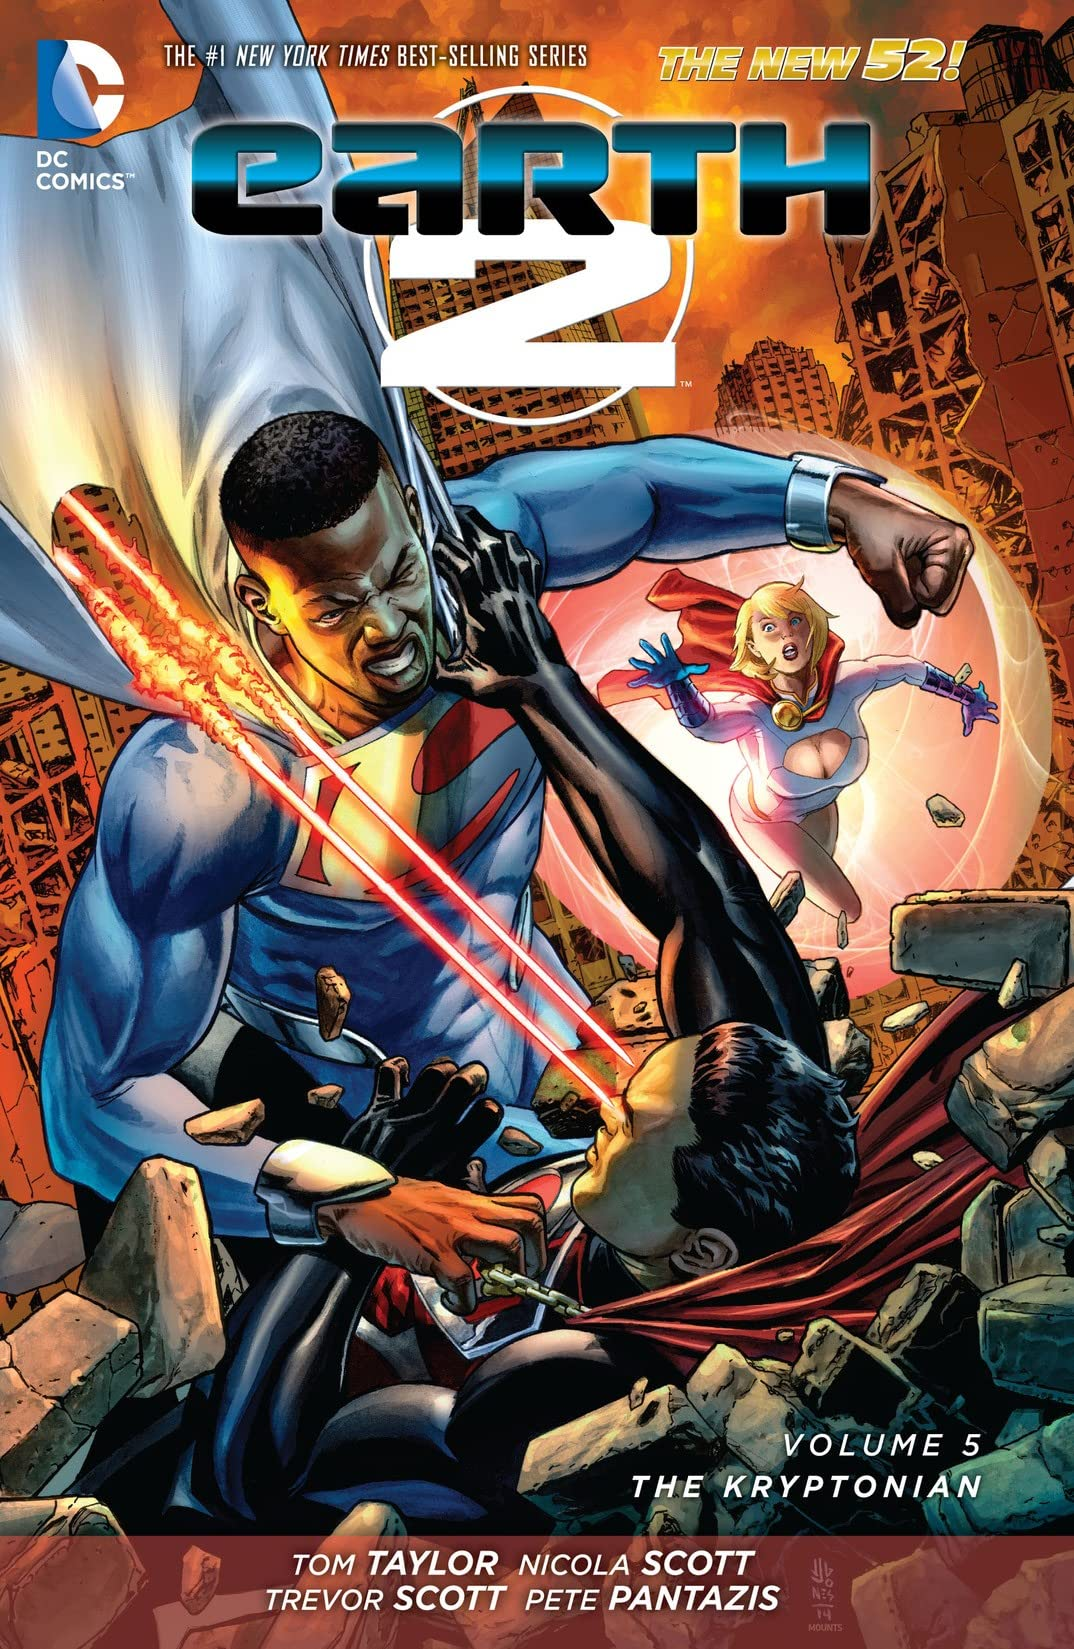 Earth 2 (2012-2015) Vol. 5: The Kryptonian